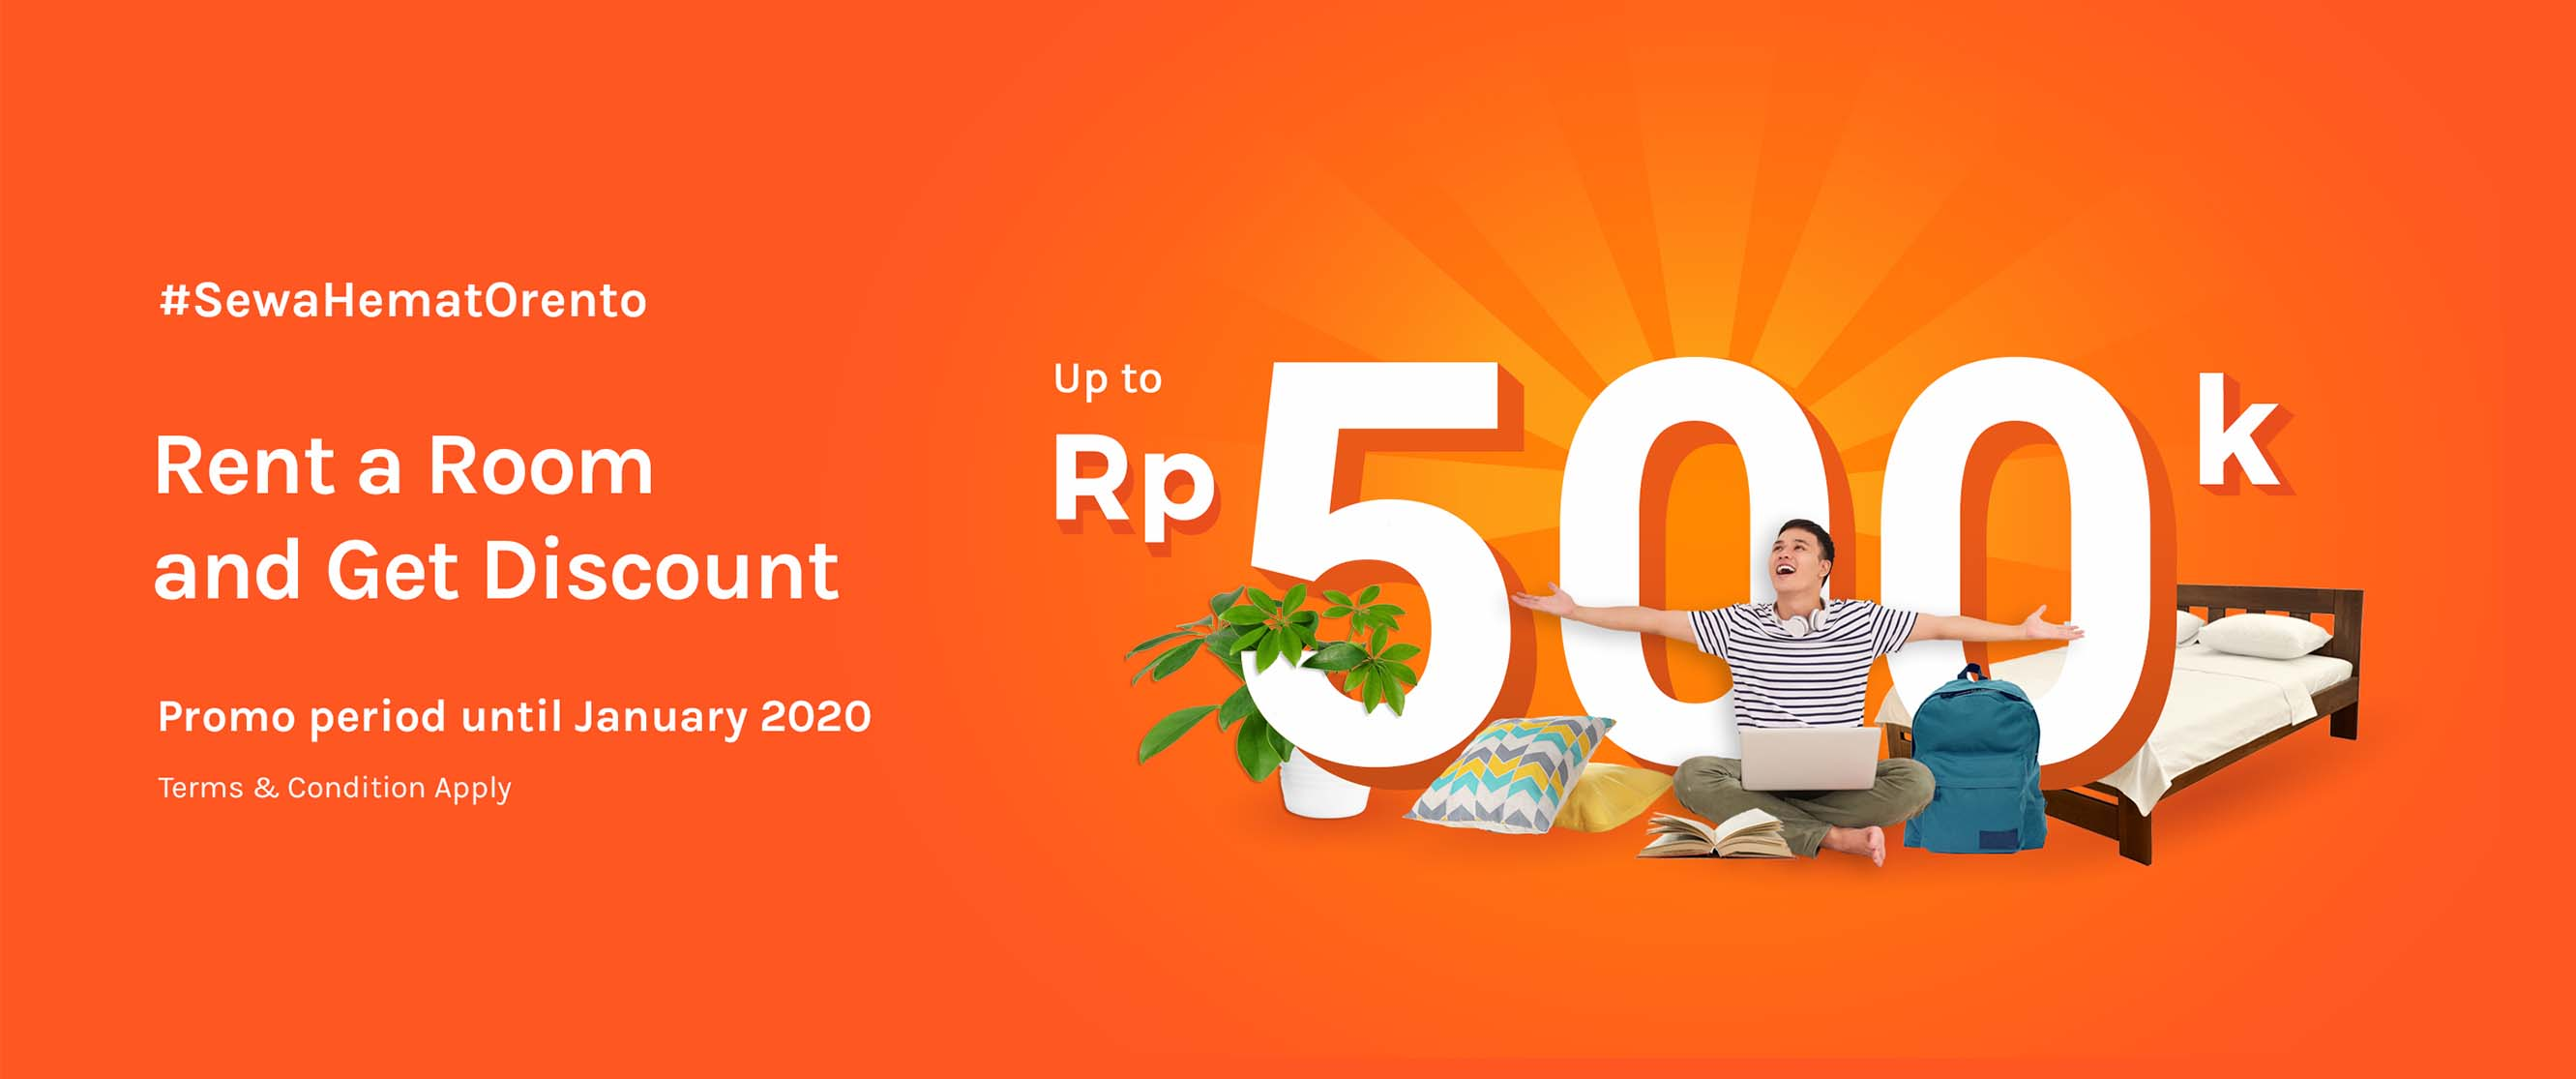 Rent a Room and Get Discount up to Rp500.000